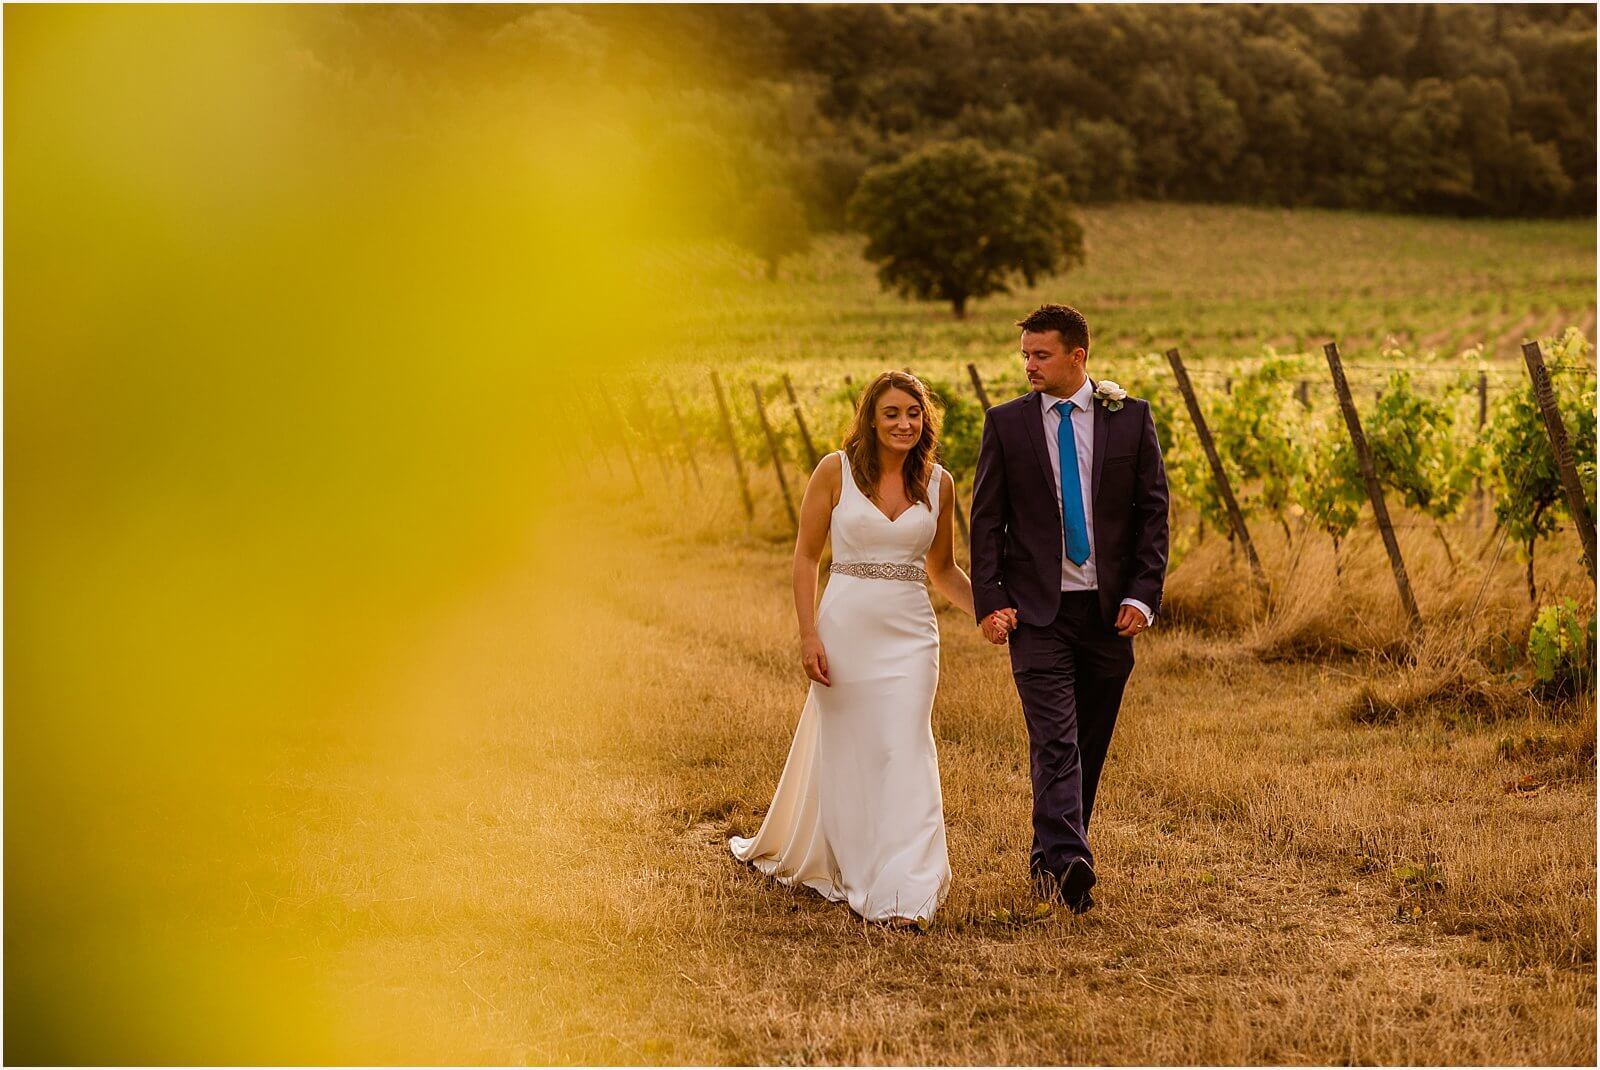 Wedding at Denbies Vineyard - charming wine estate wedding - wedding photography 74